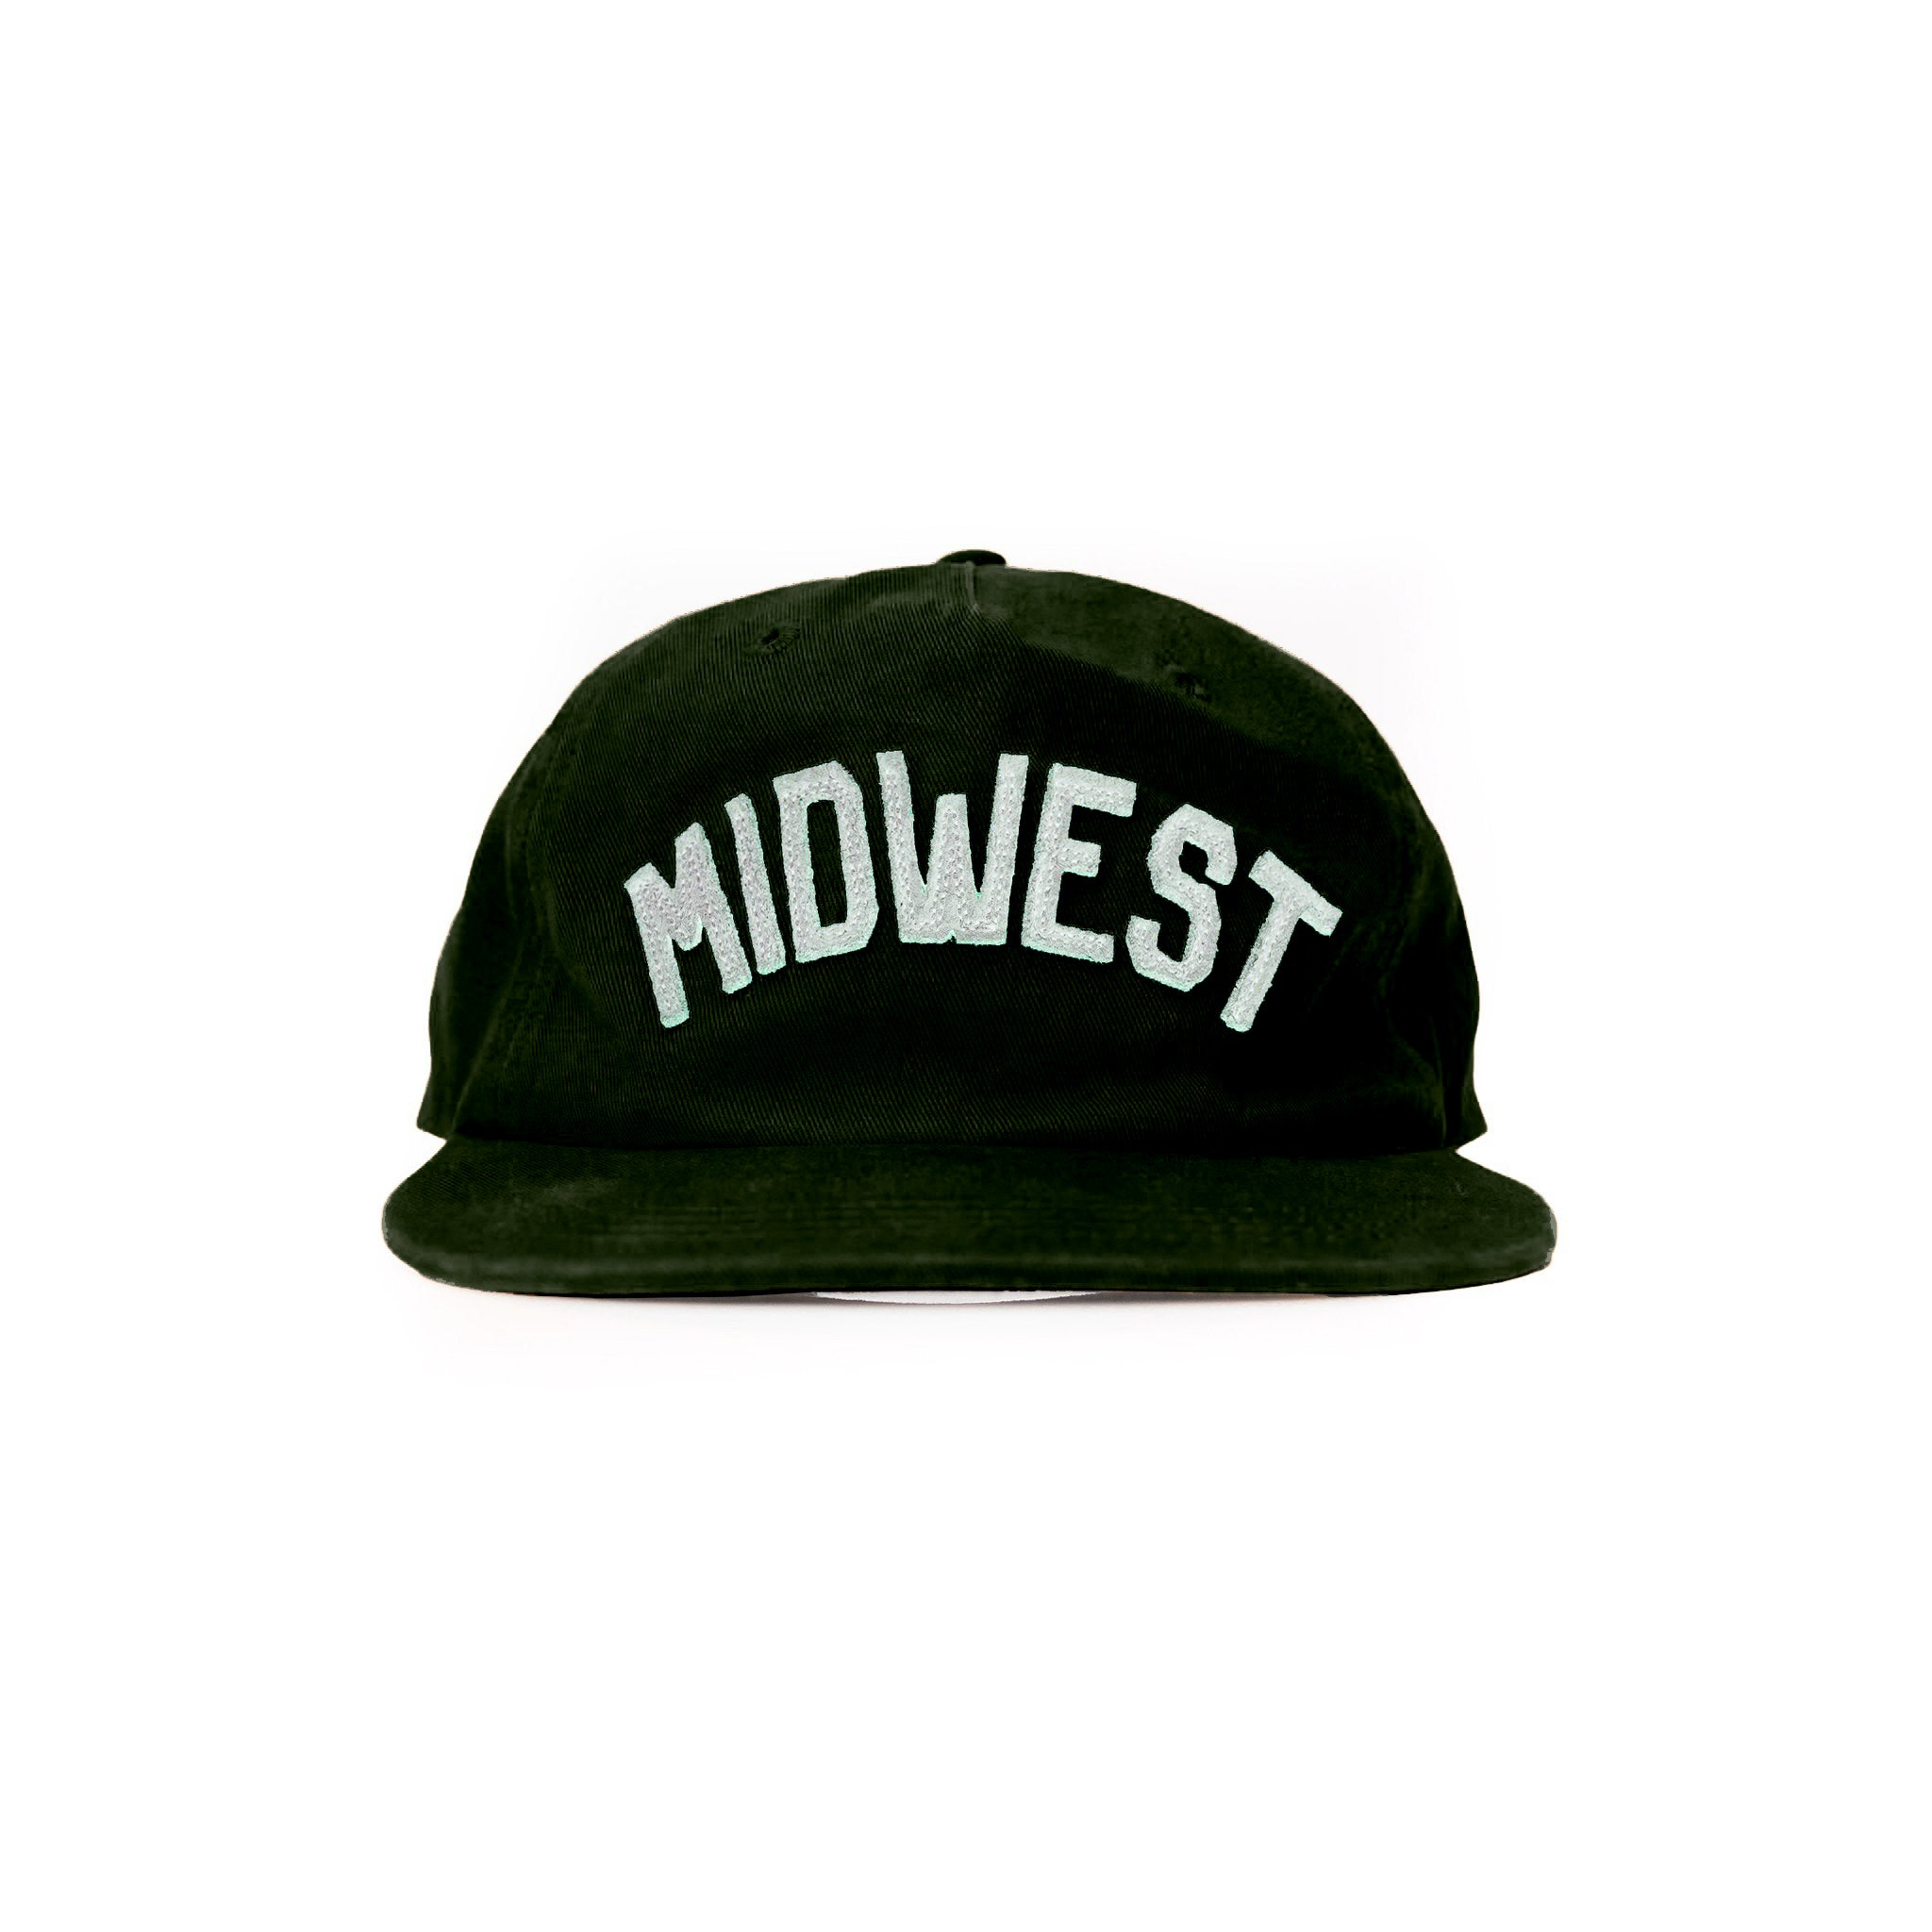 Midwest Hat - Forrest Green